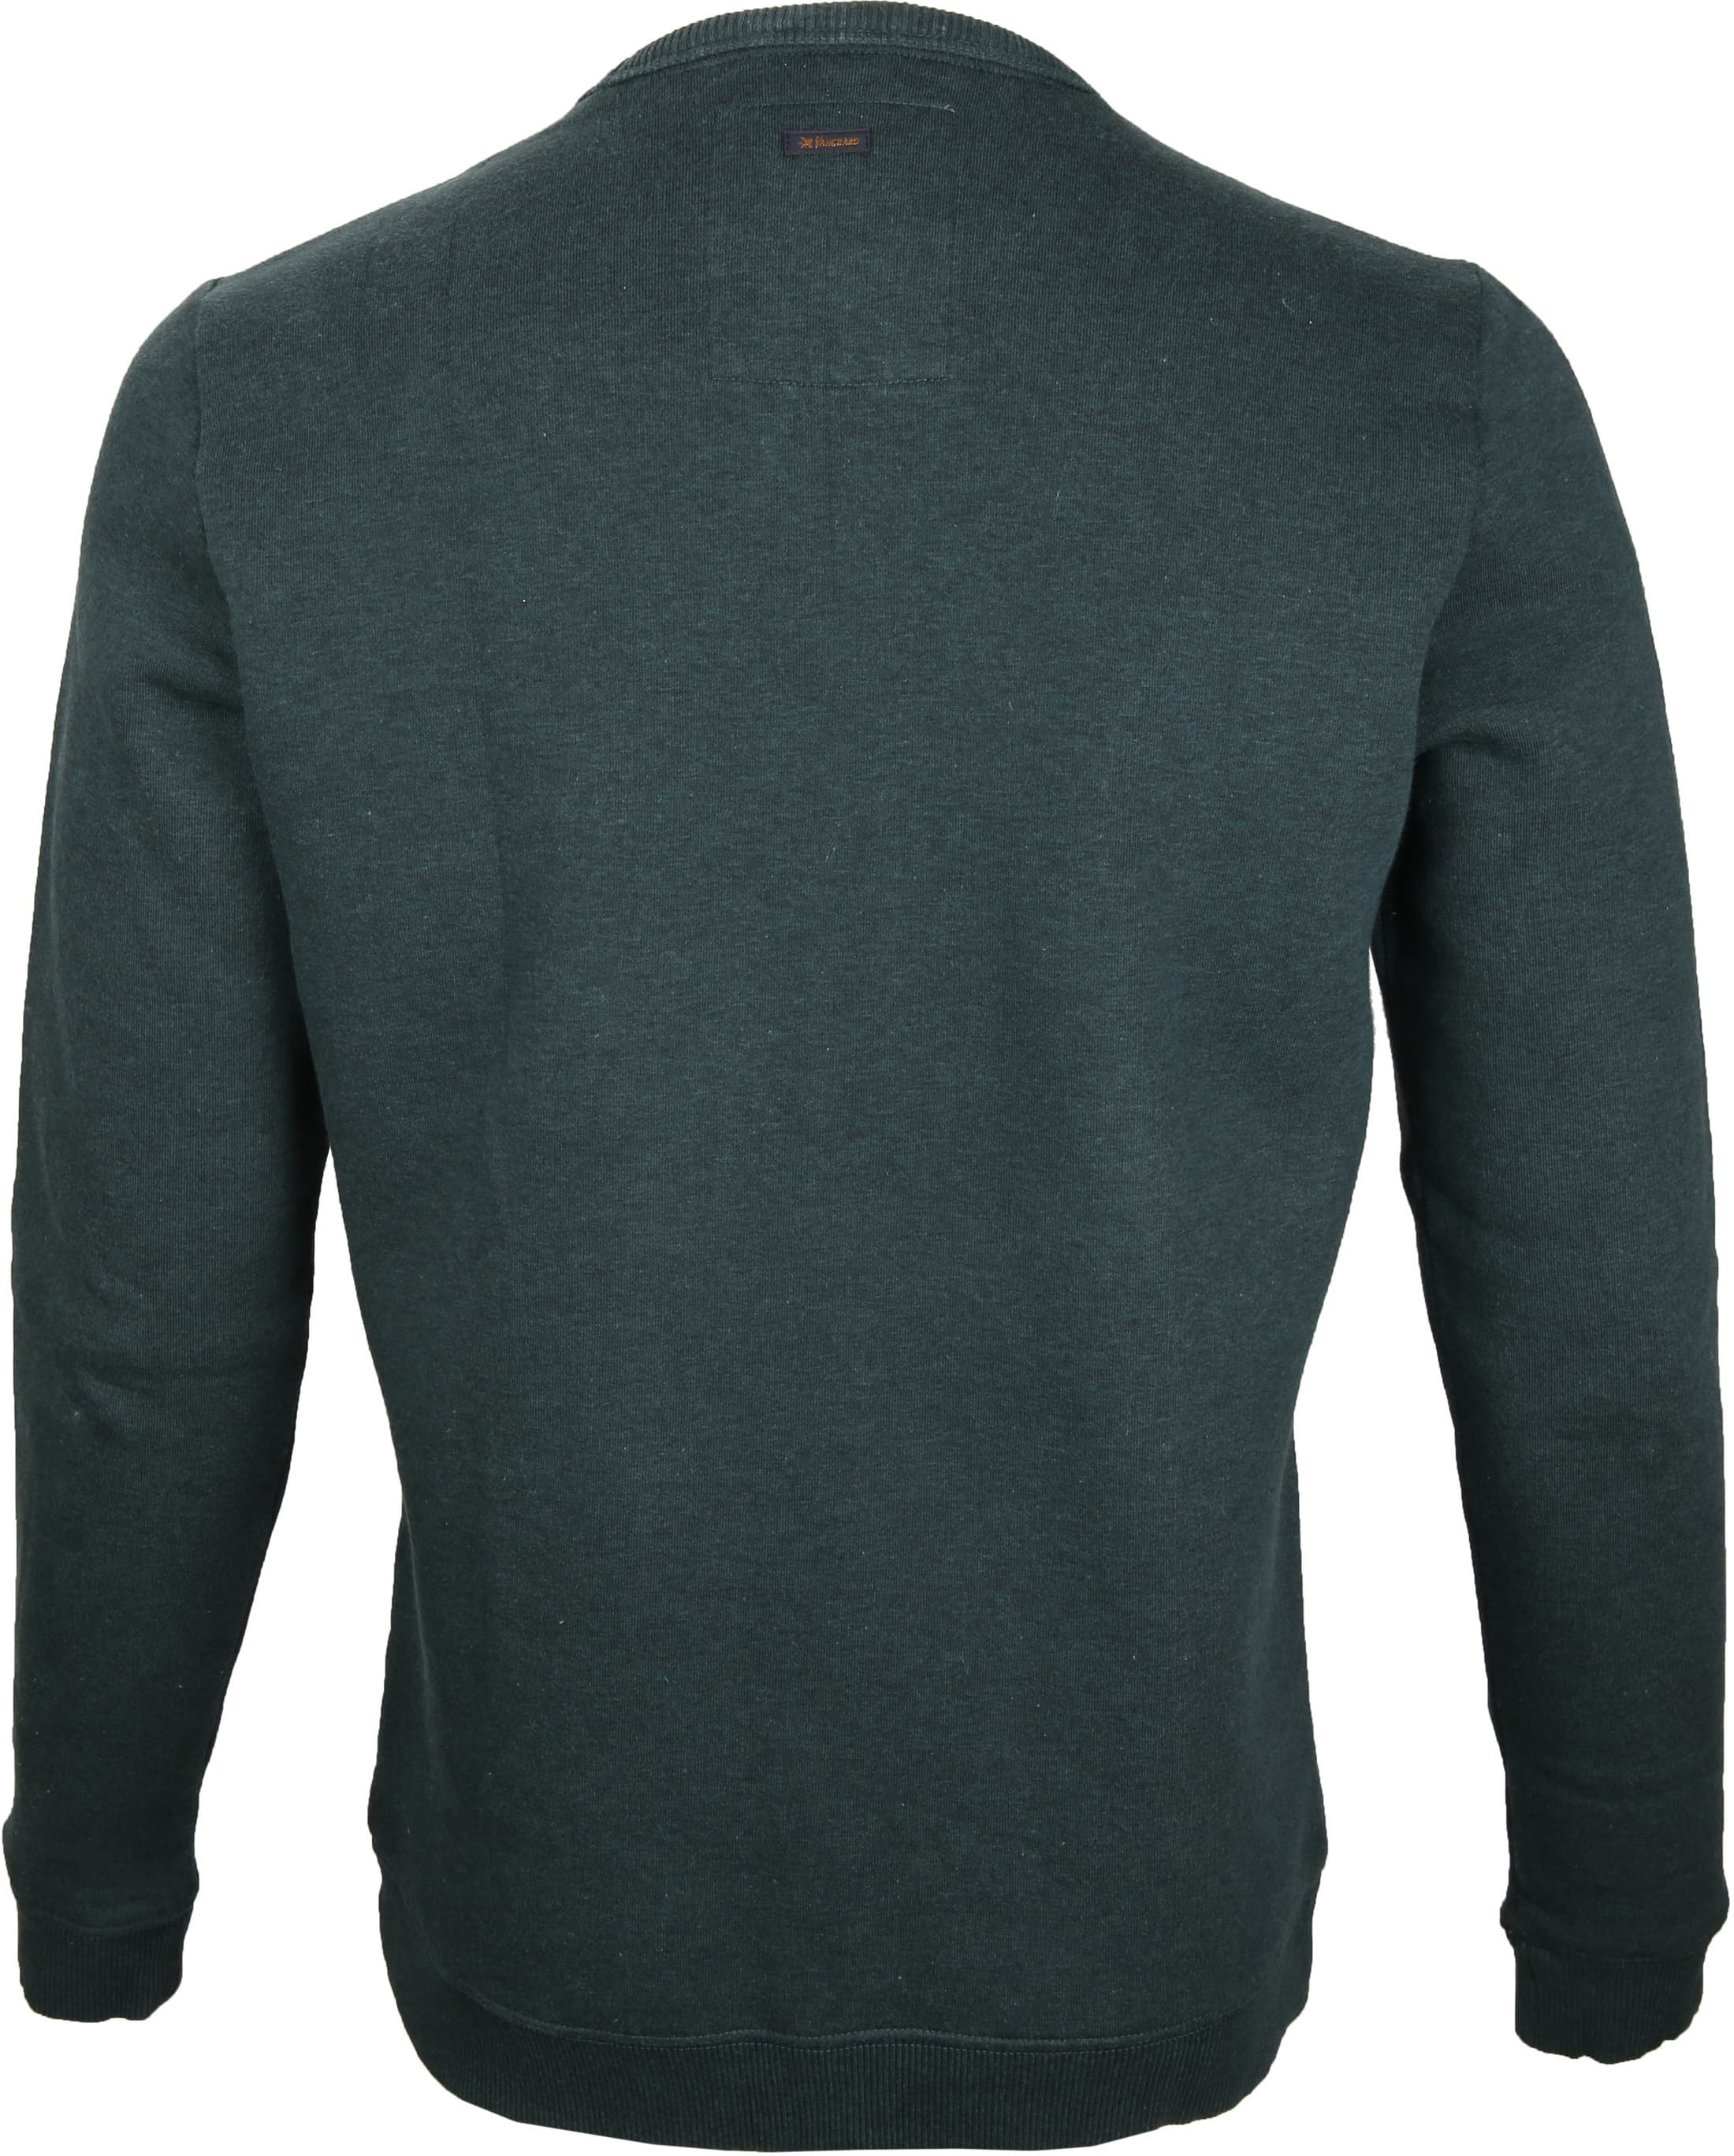 Vanguard Sweater Dark Green foto 2